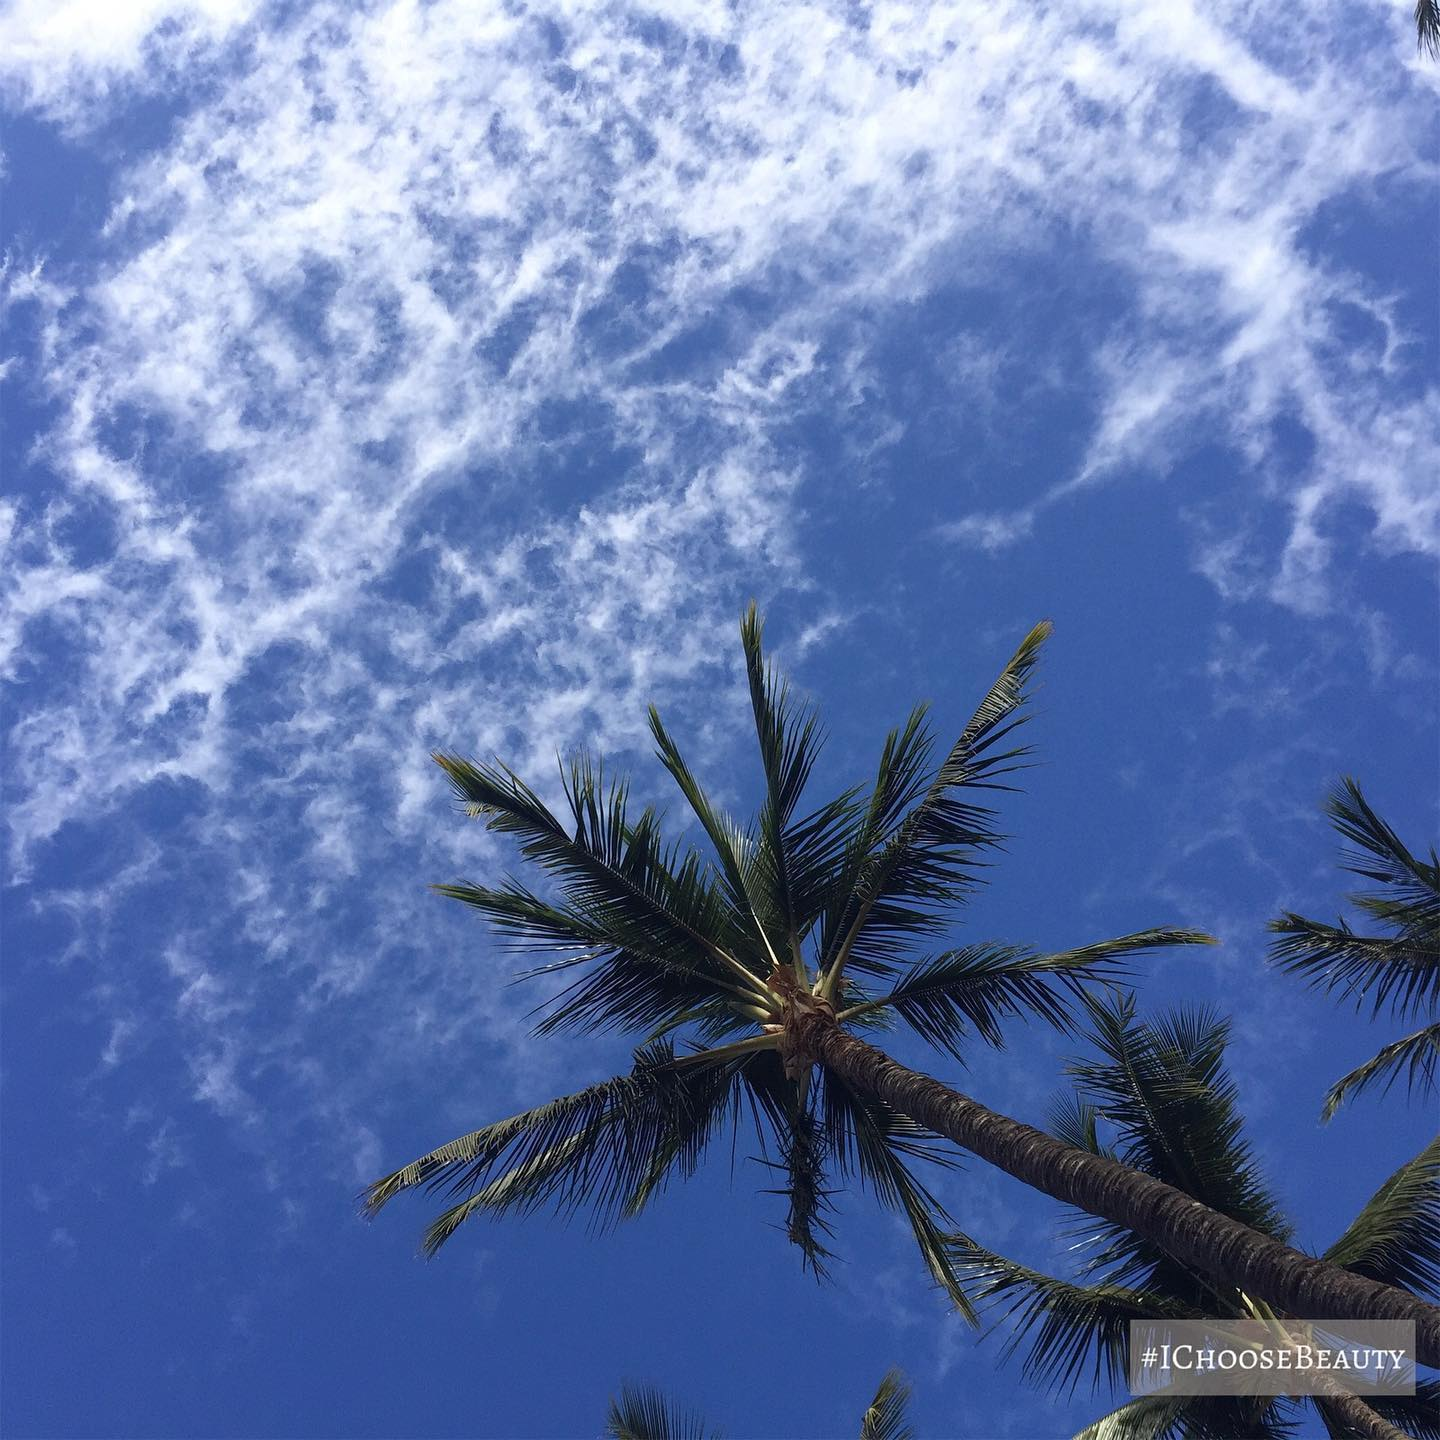 Just lying here, staring at the sky. #ichoosebeauty Day 2587